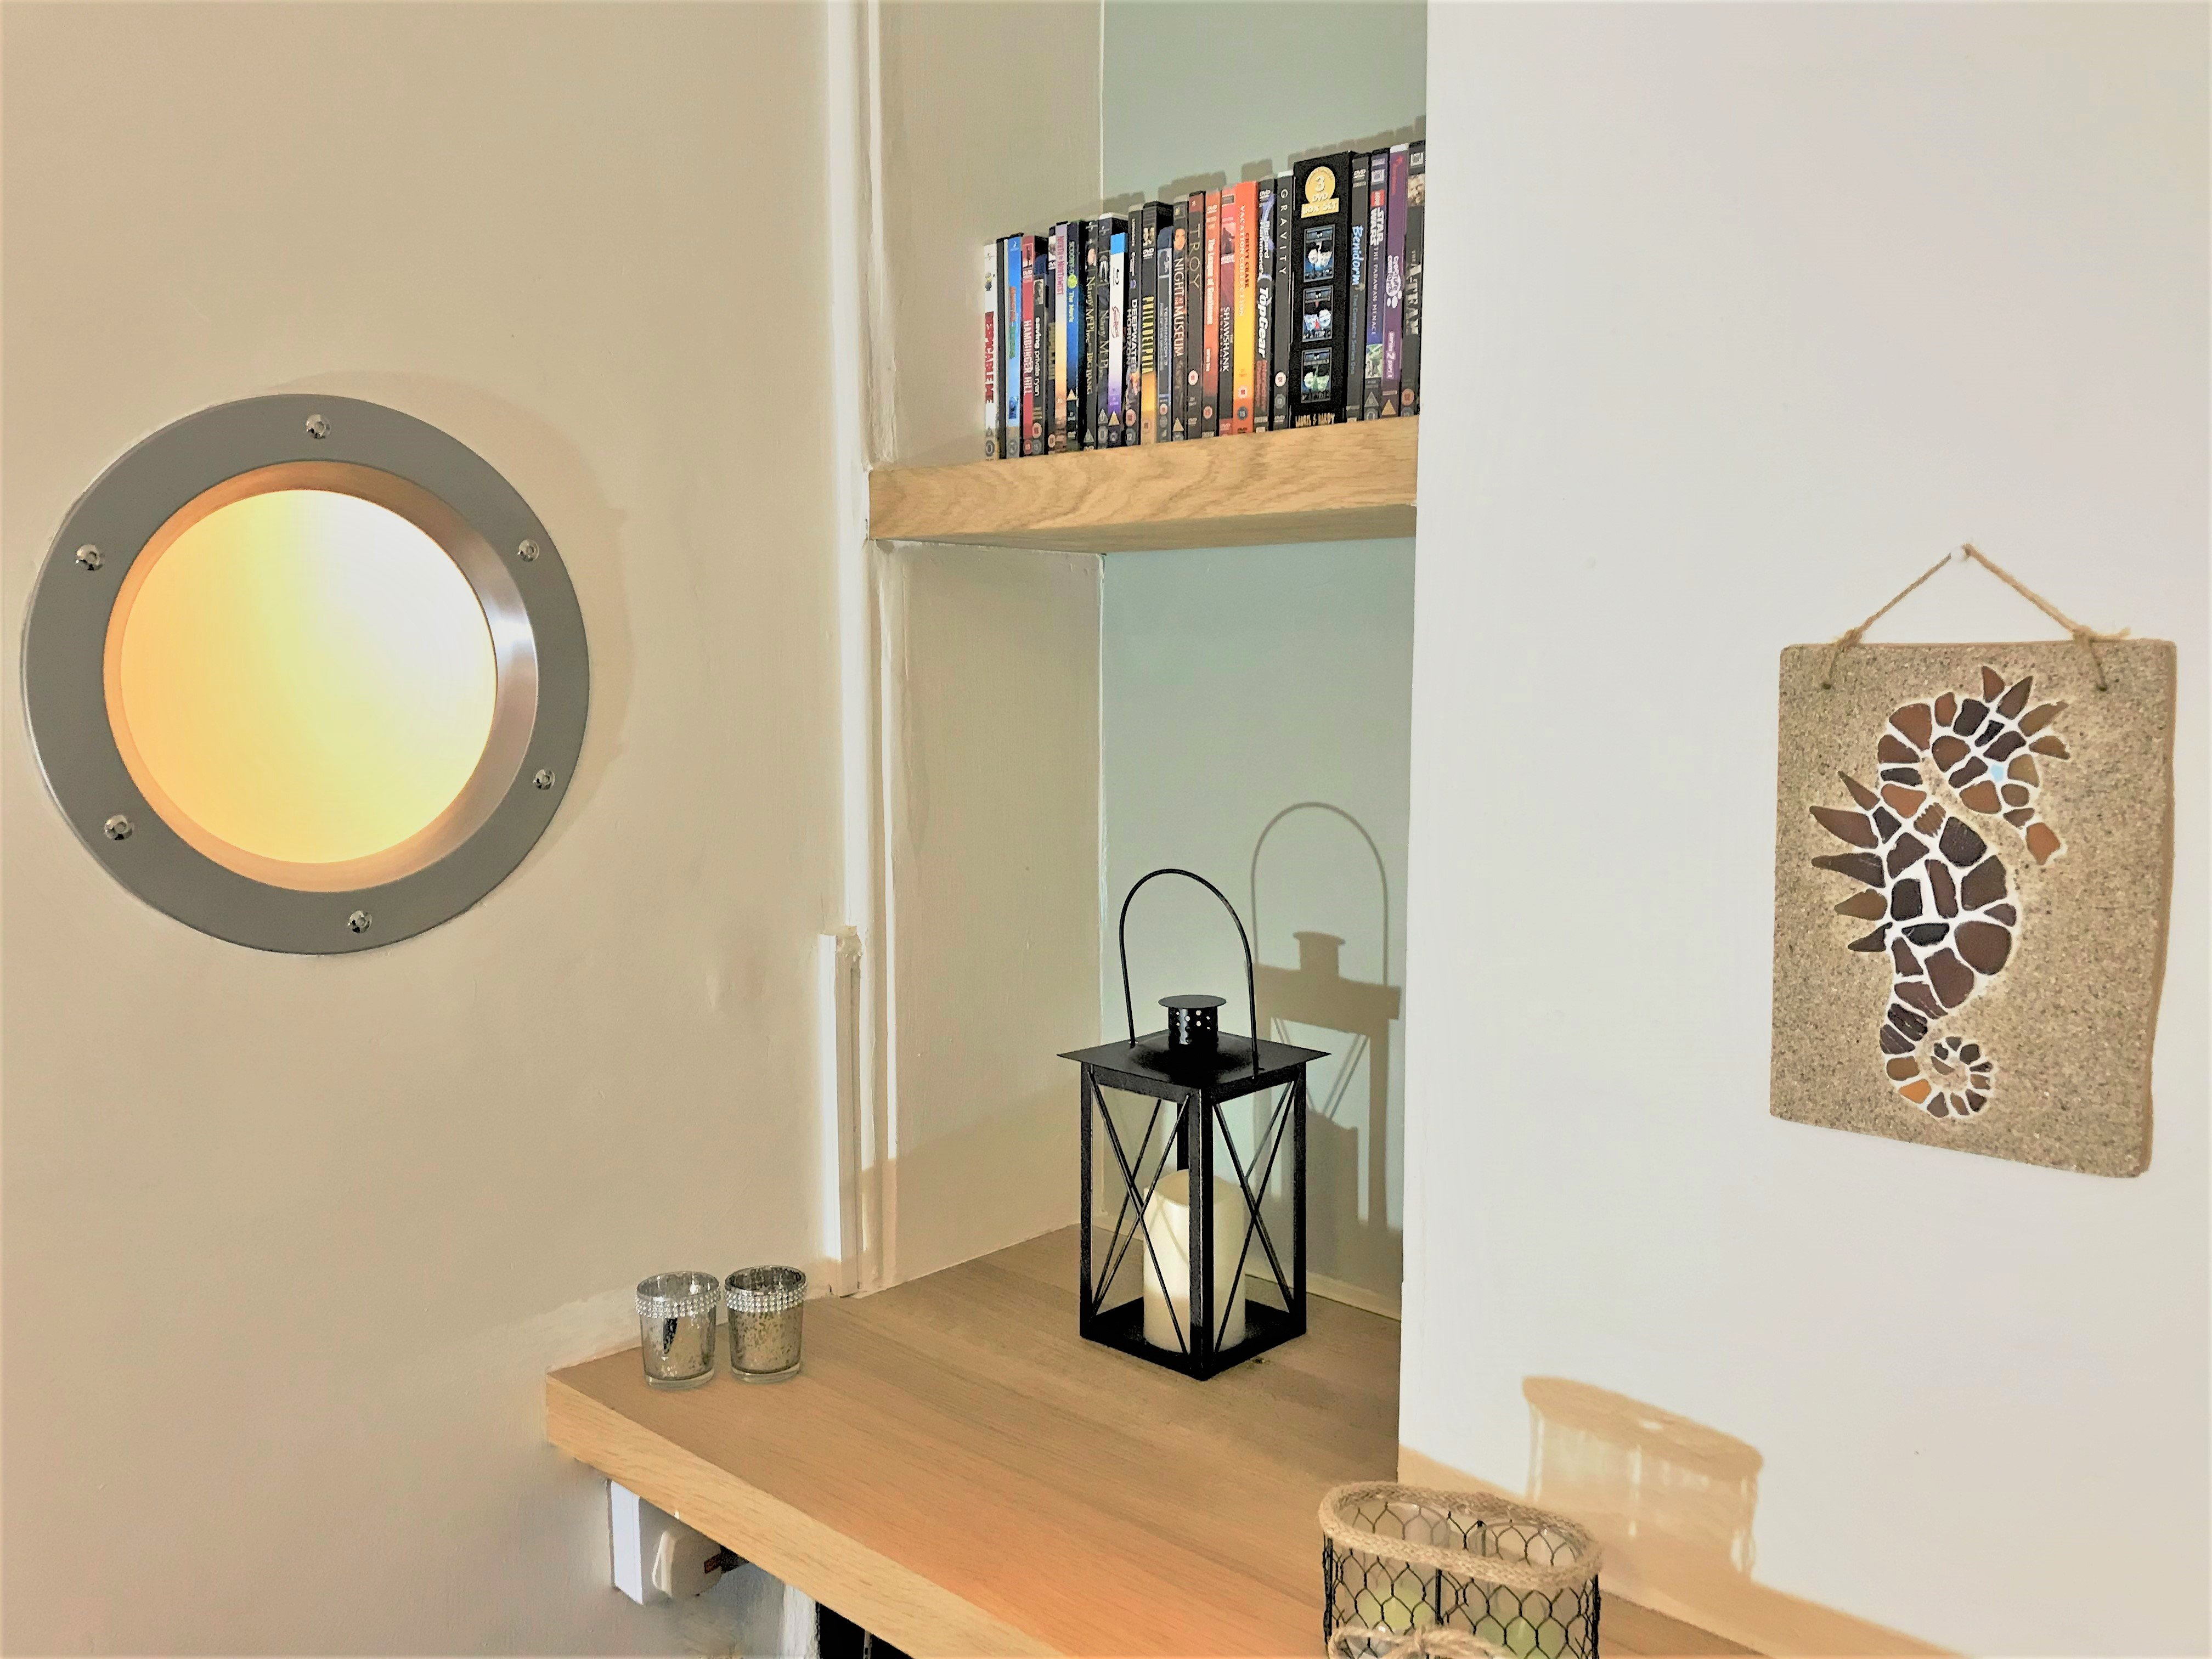 new pic of porthole in lounge